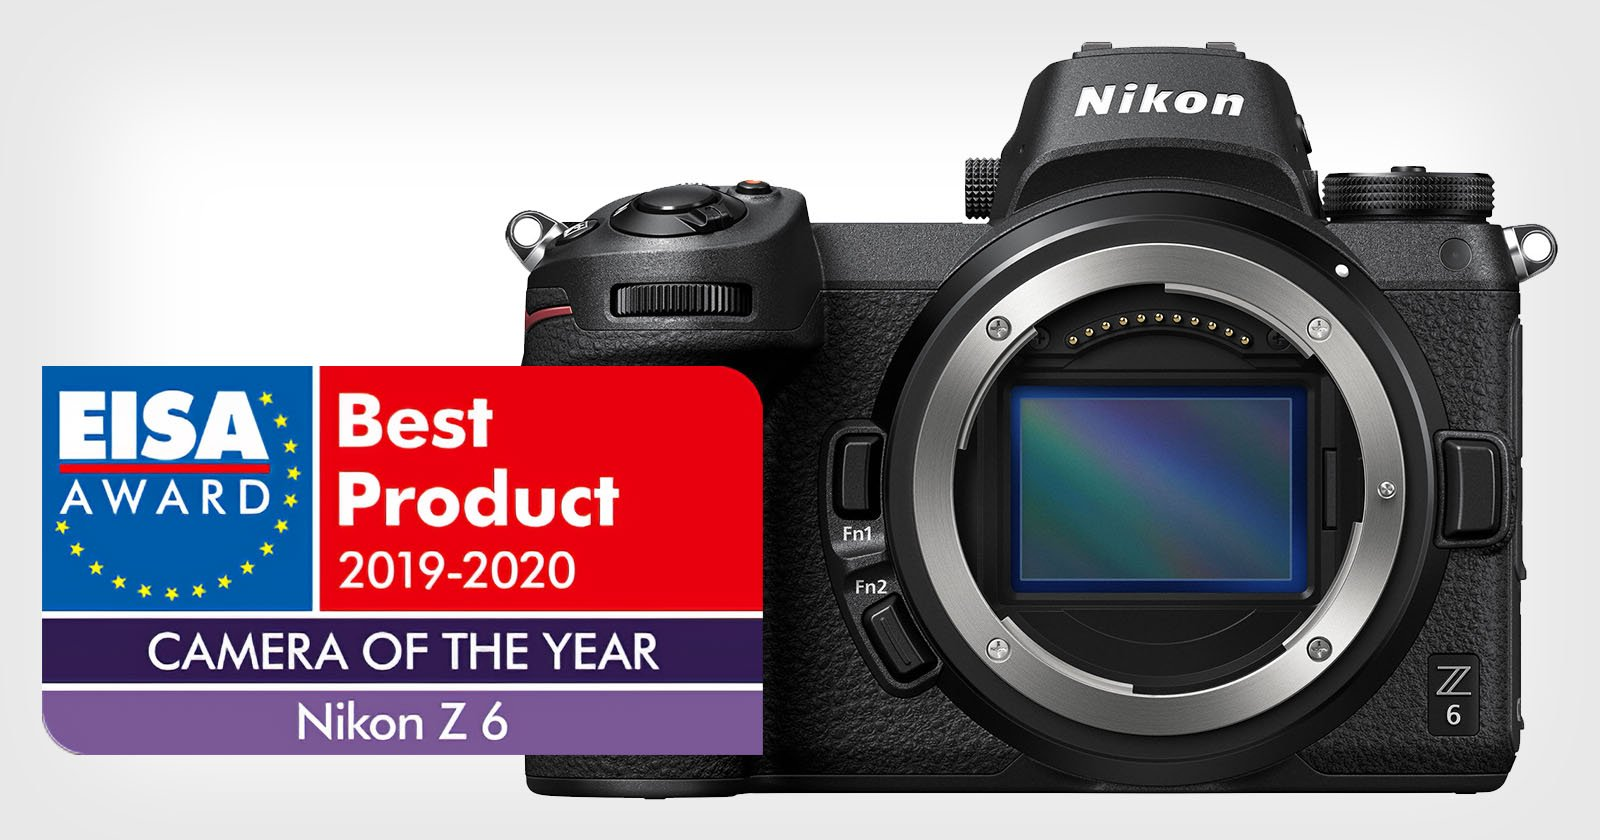 These are the Best Cameras and Lenses of 2019 According to the EISA Awards